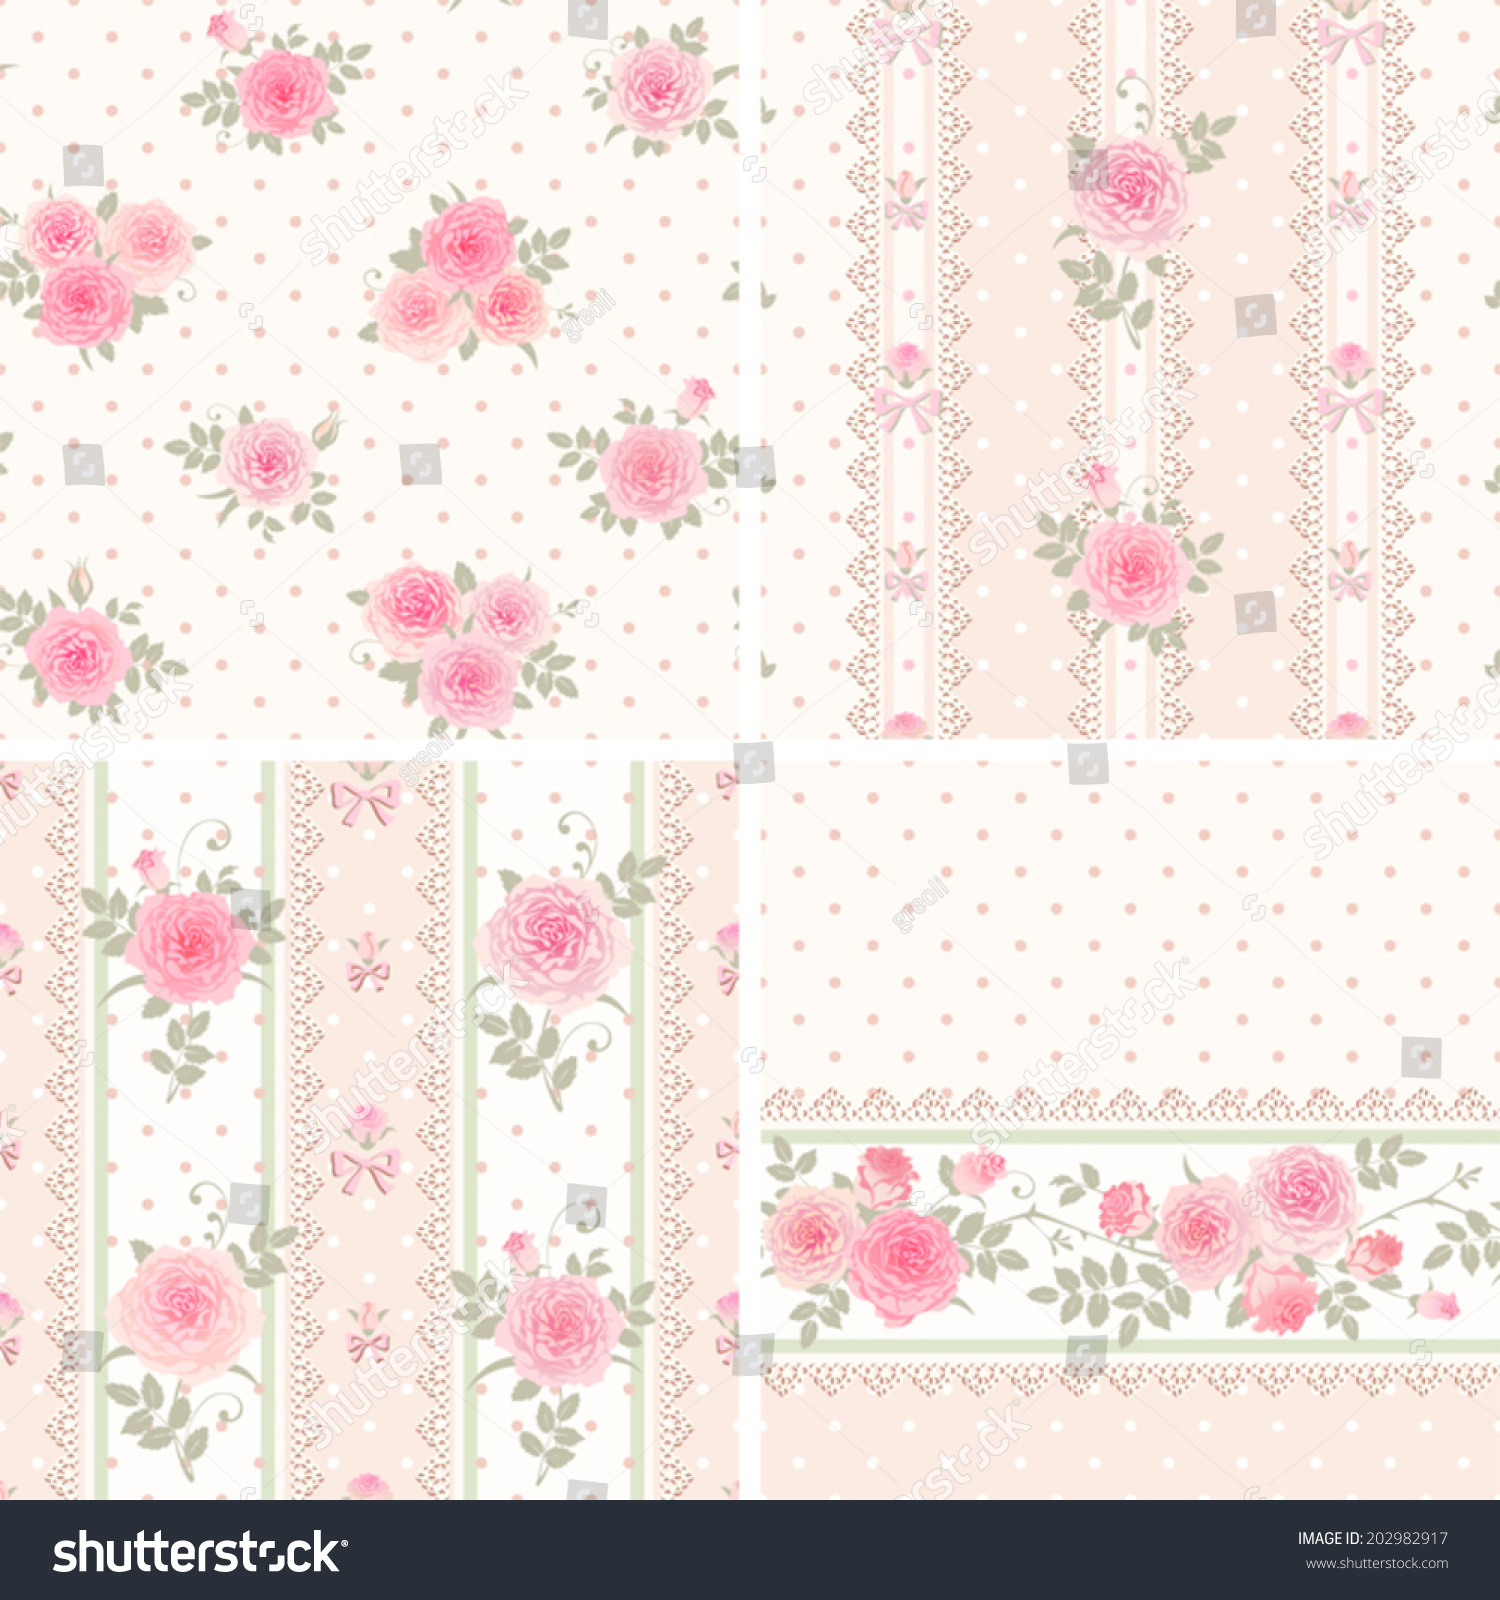 Seamless Floral Background And Borders Set Of Shabby Chic Style Patterns With Roses